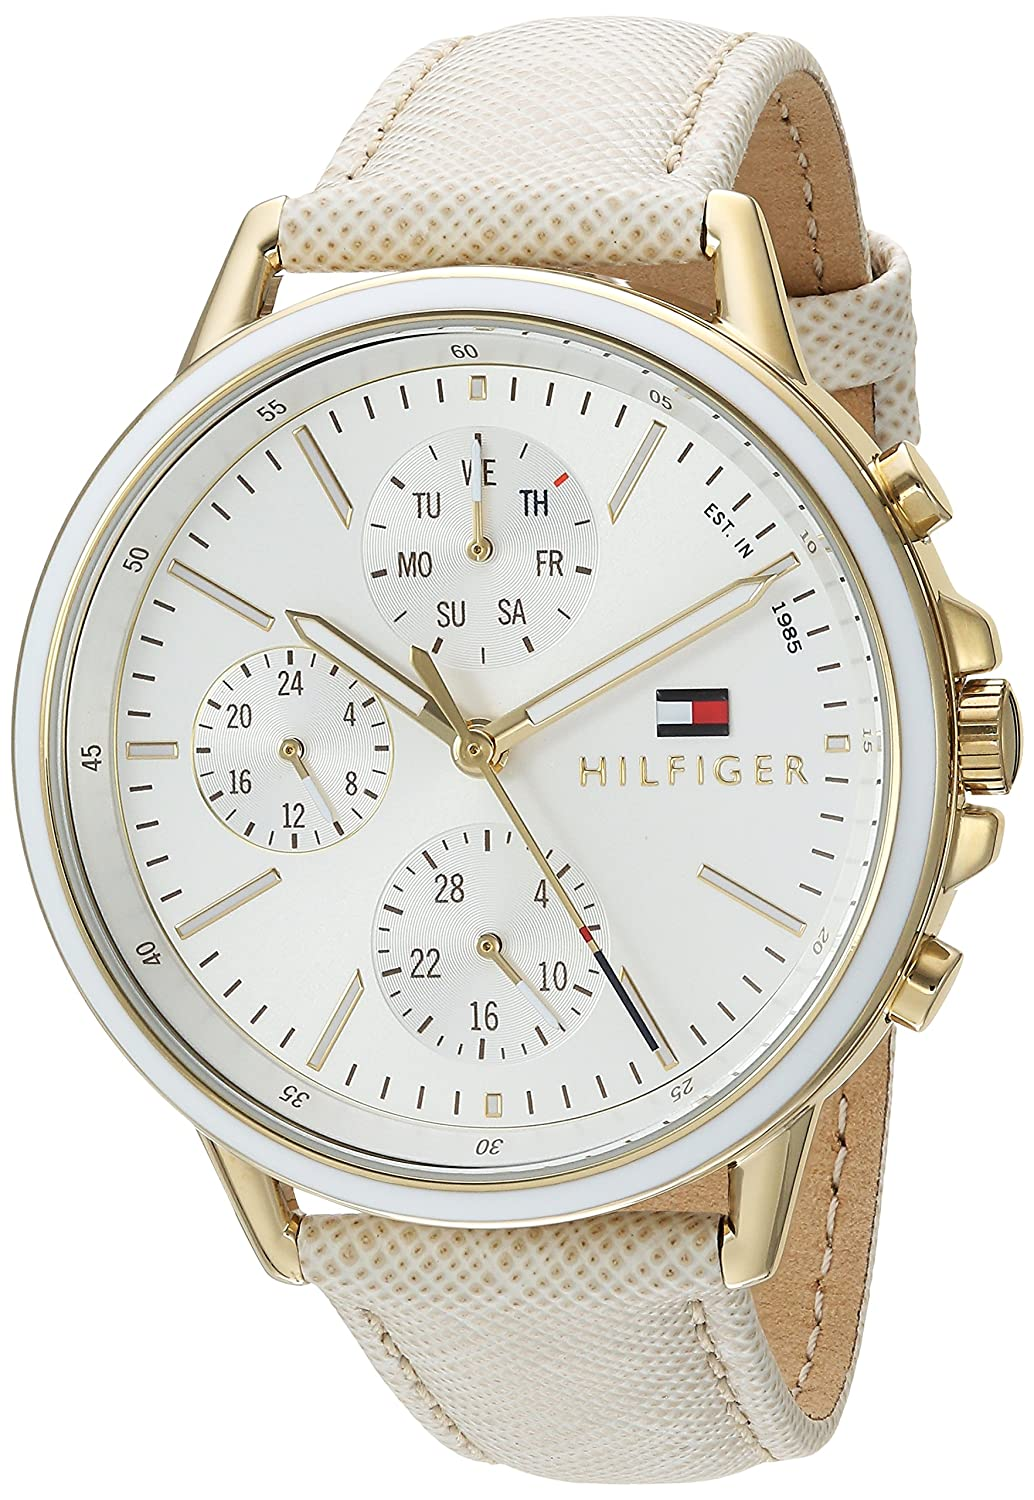 4a840e6db Amazon.com: Tommy Hilfiger Women's Casual Sport Quartz Watch with Leather  Calfskin Strap, Champagne, 17 (Model: 1781790): Tommy Hilfiger: Watches